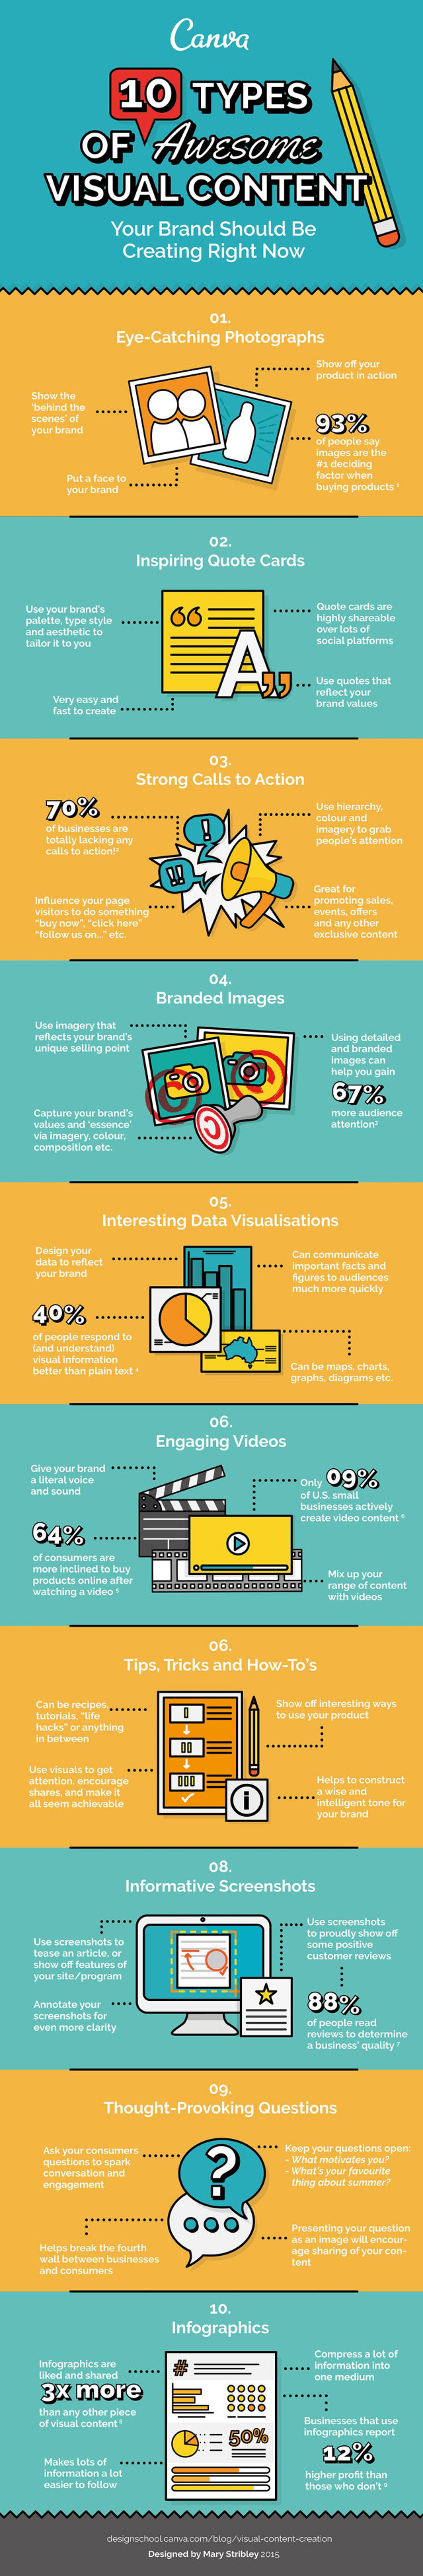 Ten Types of Visual Content That Will Make You Look Awesome Online #Infographic